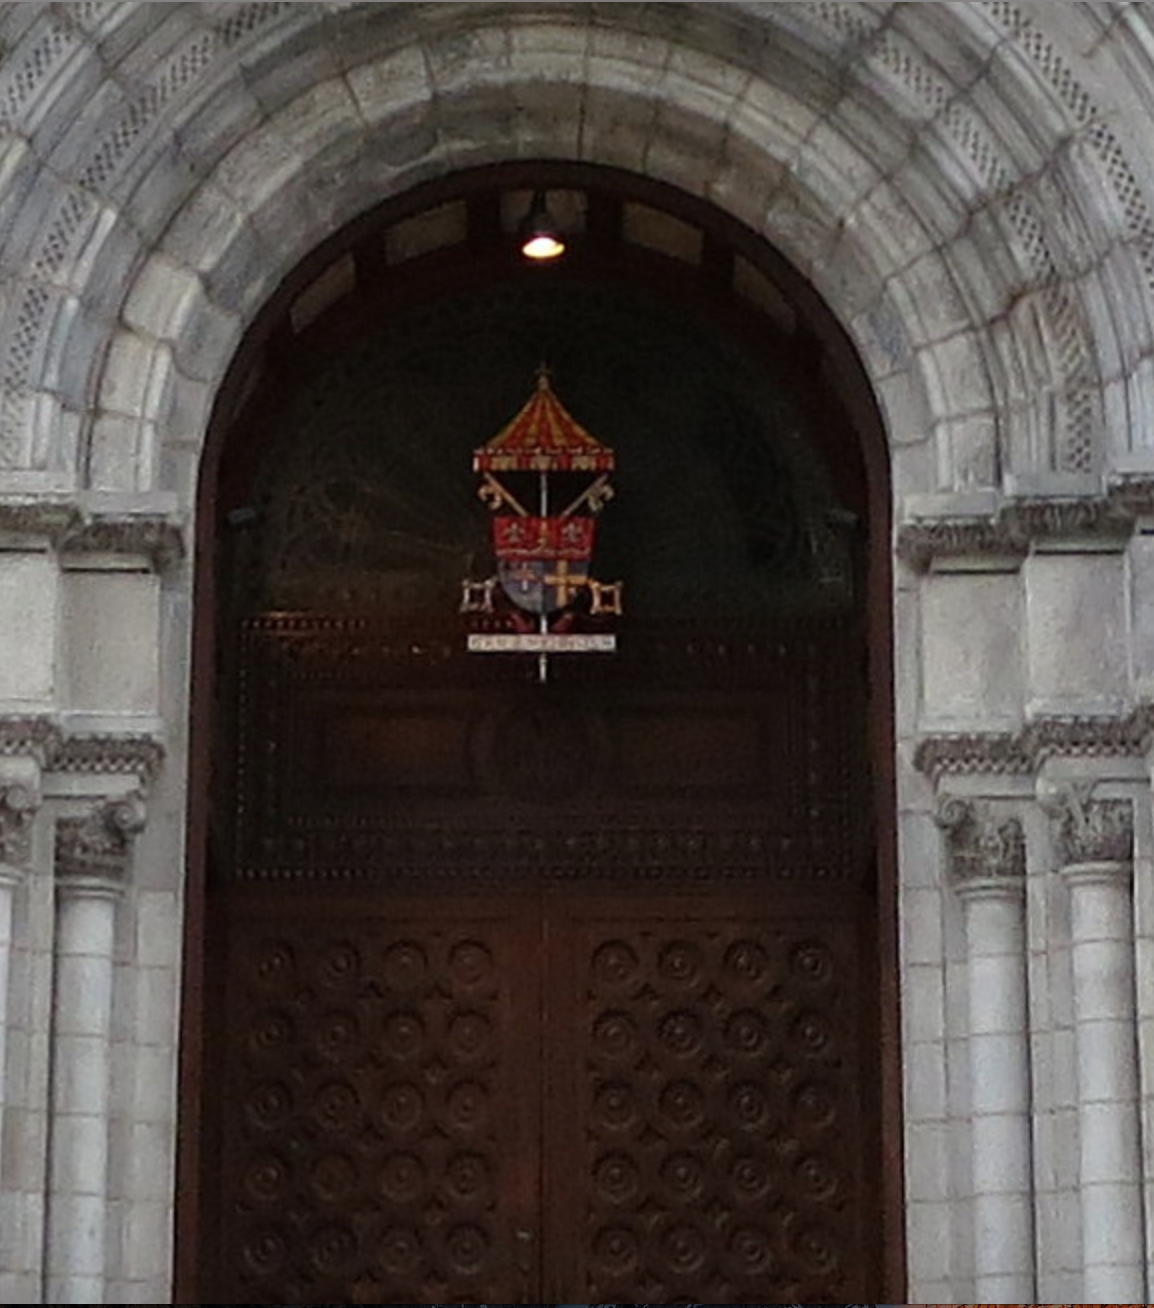 Grand door of the Cathedral Basilica of St. Louis. Photo by Ena Kovac, March 23, 2017.